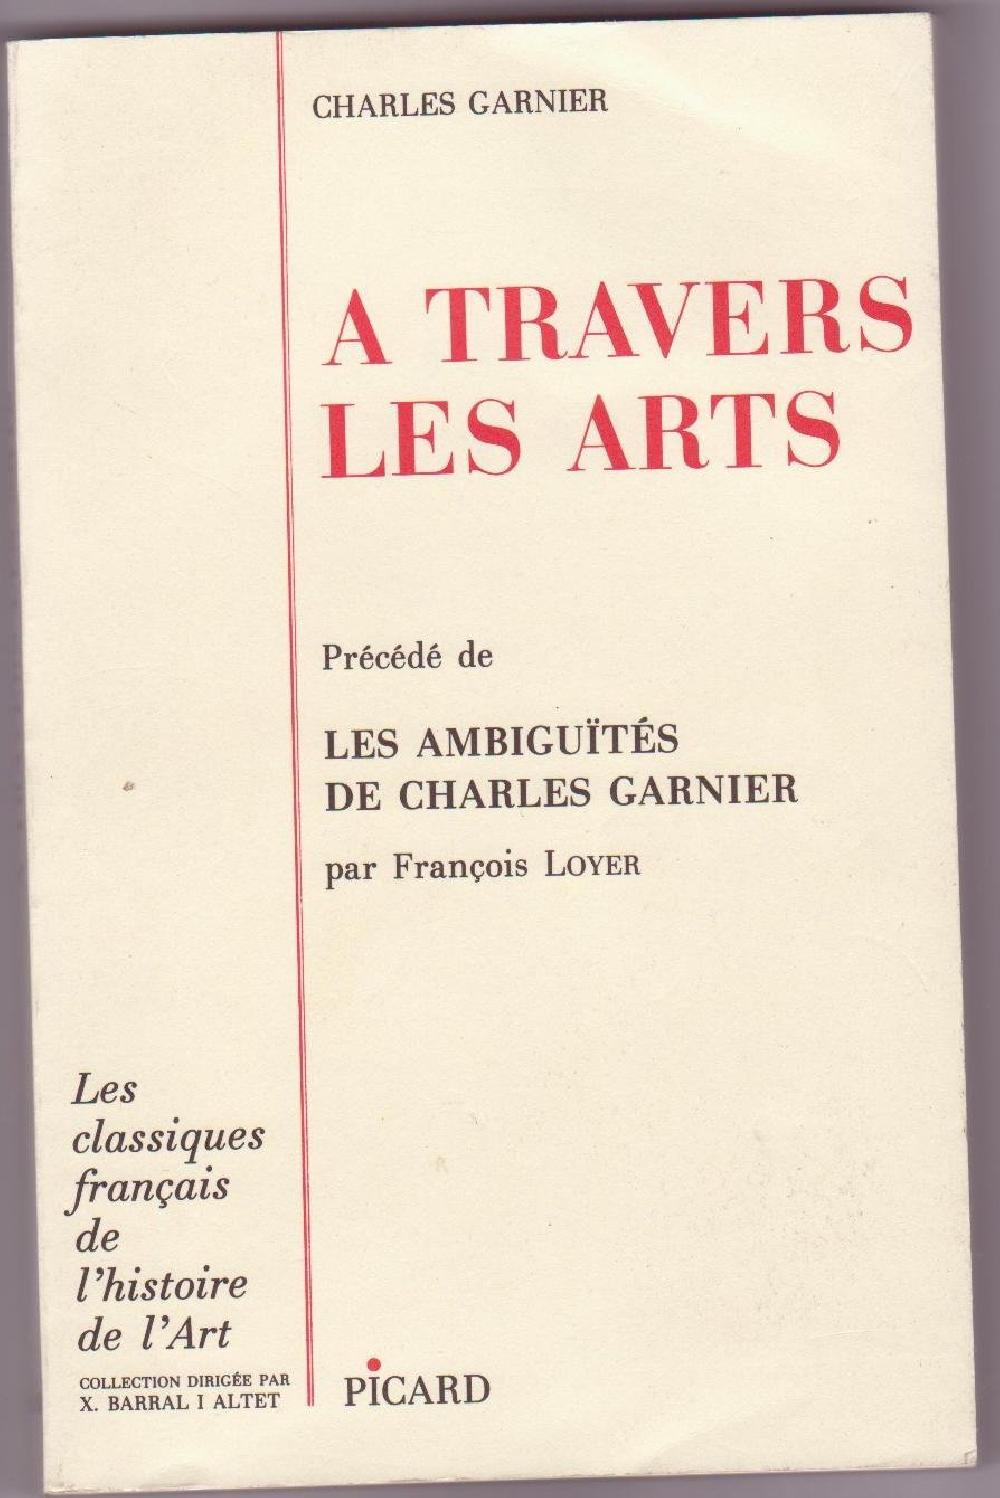 À travers les arts